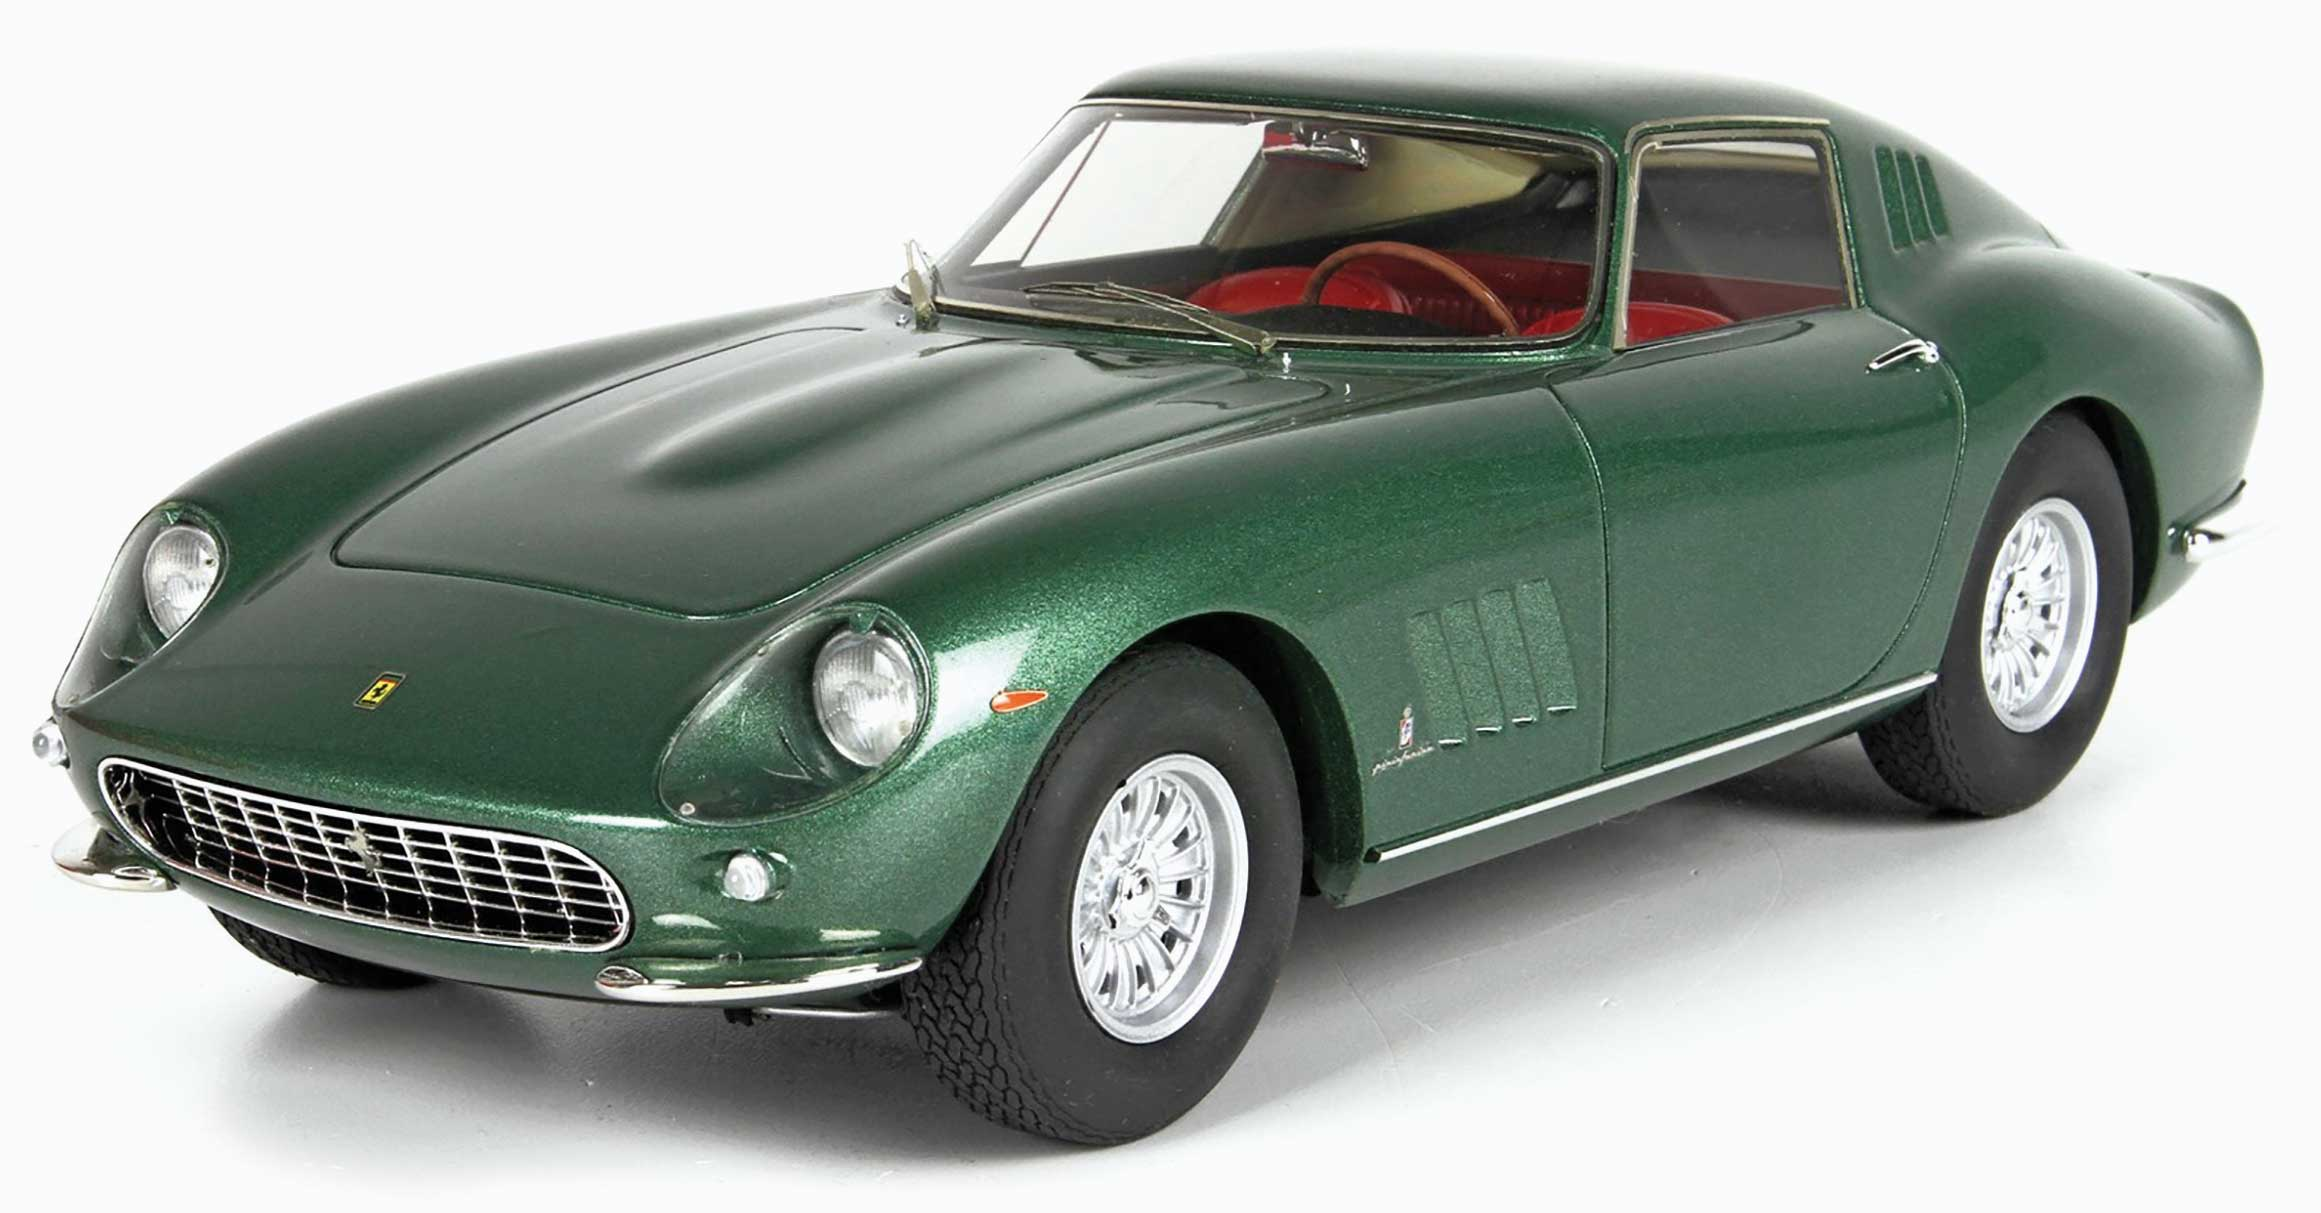 BBR 1:18 Battista Pininfaina Personal Ferrari 275 Diecast Model Car Review